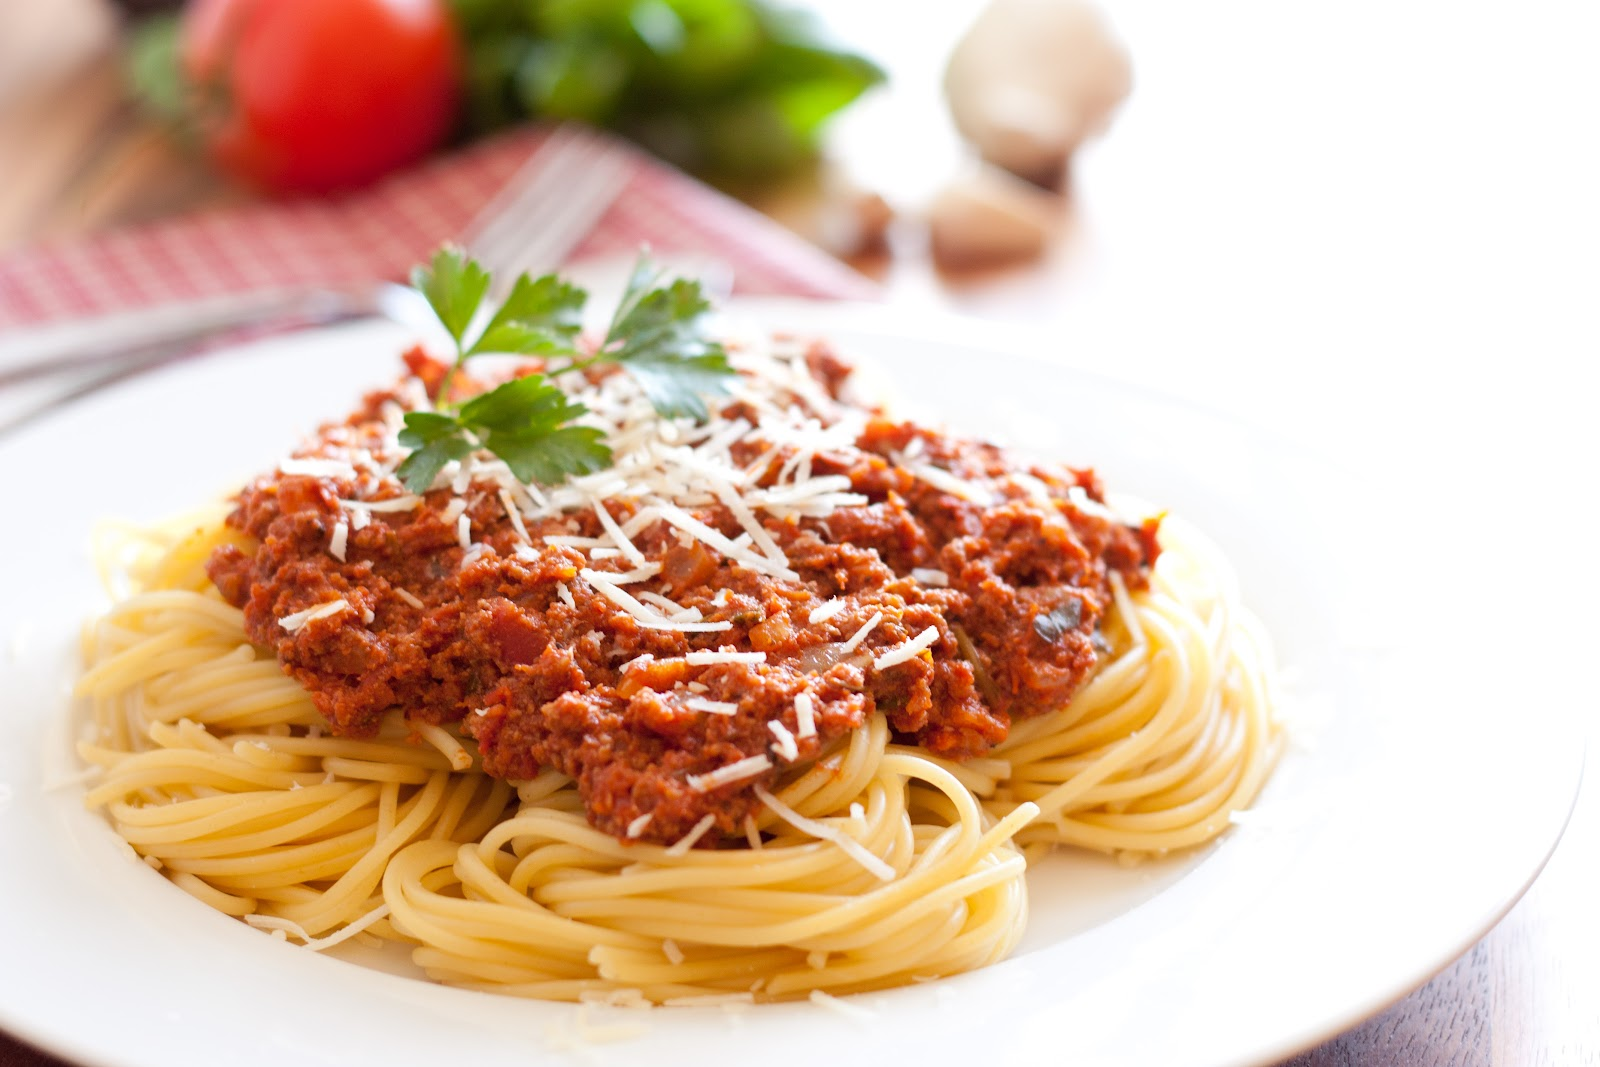 Spaghetti fun facts mobile cuisine for About italian food